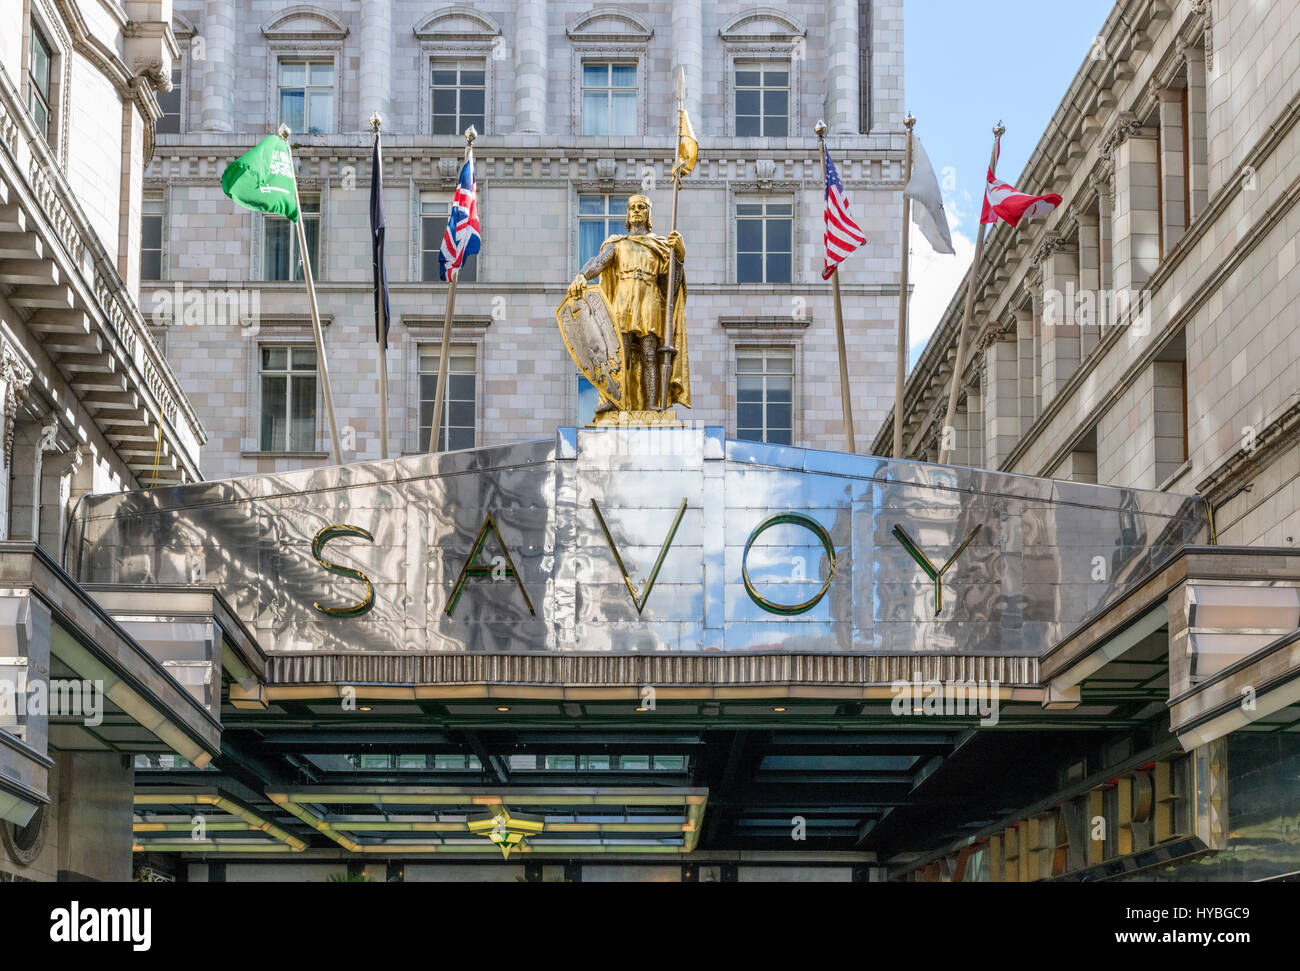 Savoy Hotel, London. Sign above the entrance to the Savoy Hotel, The Strand, London, England, UK - Stock Image